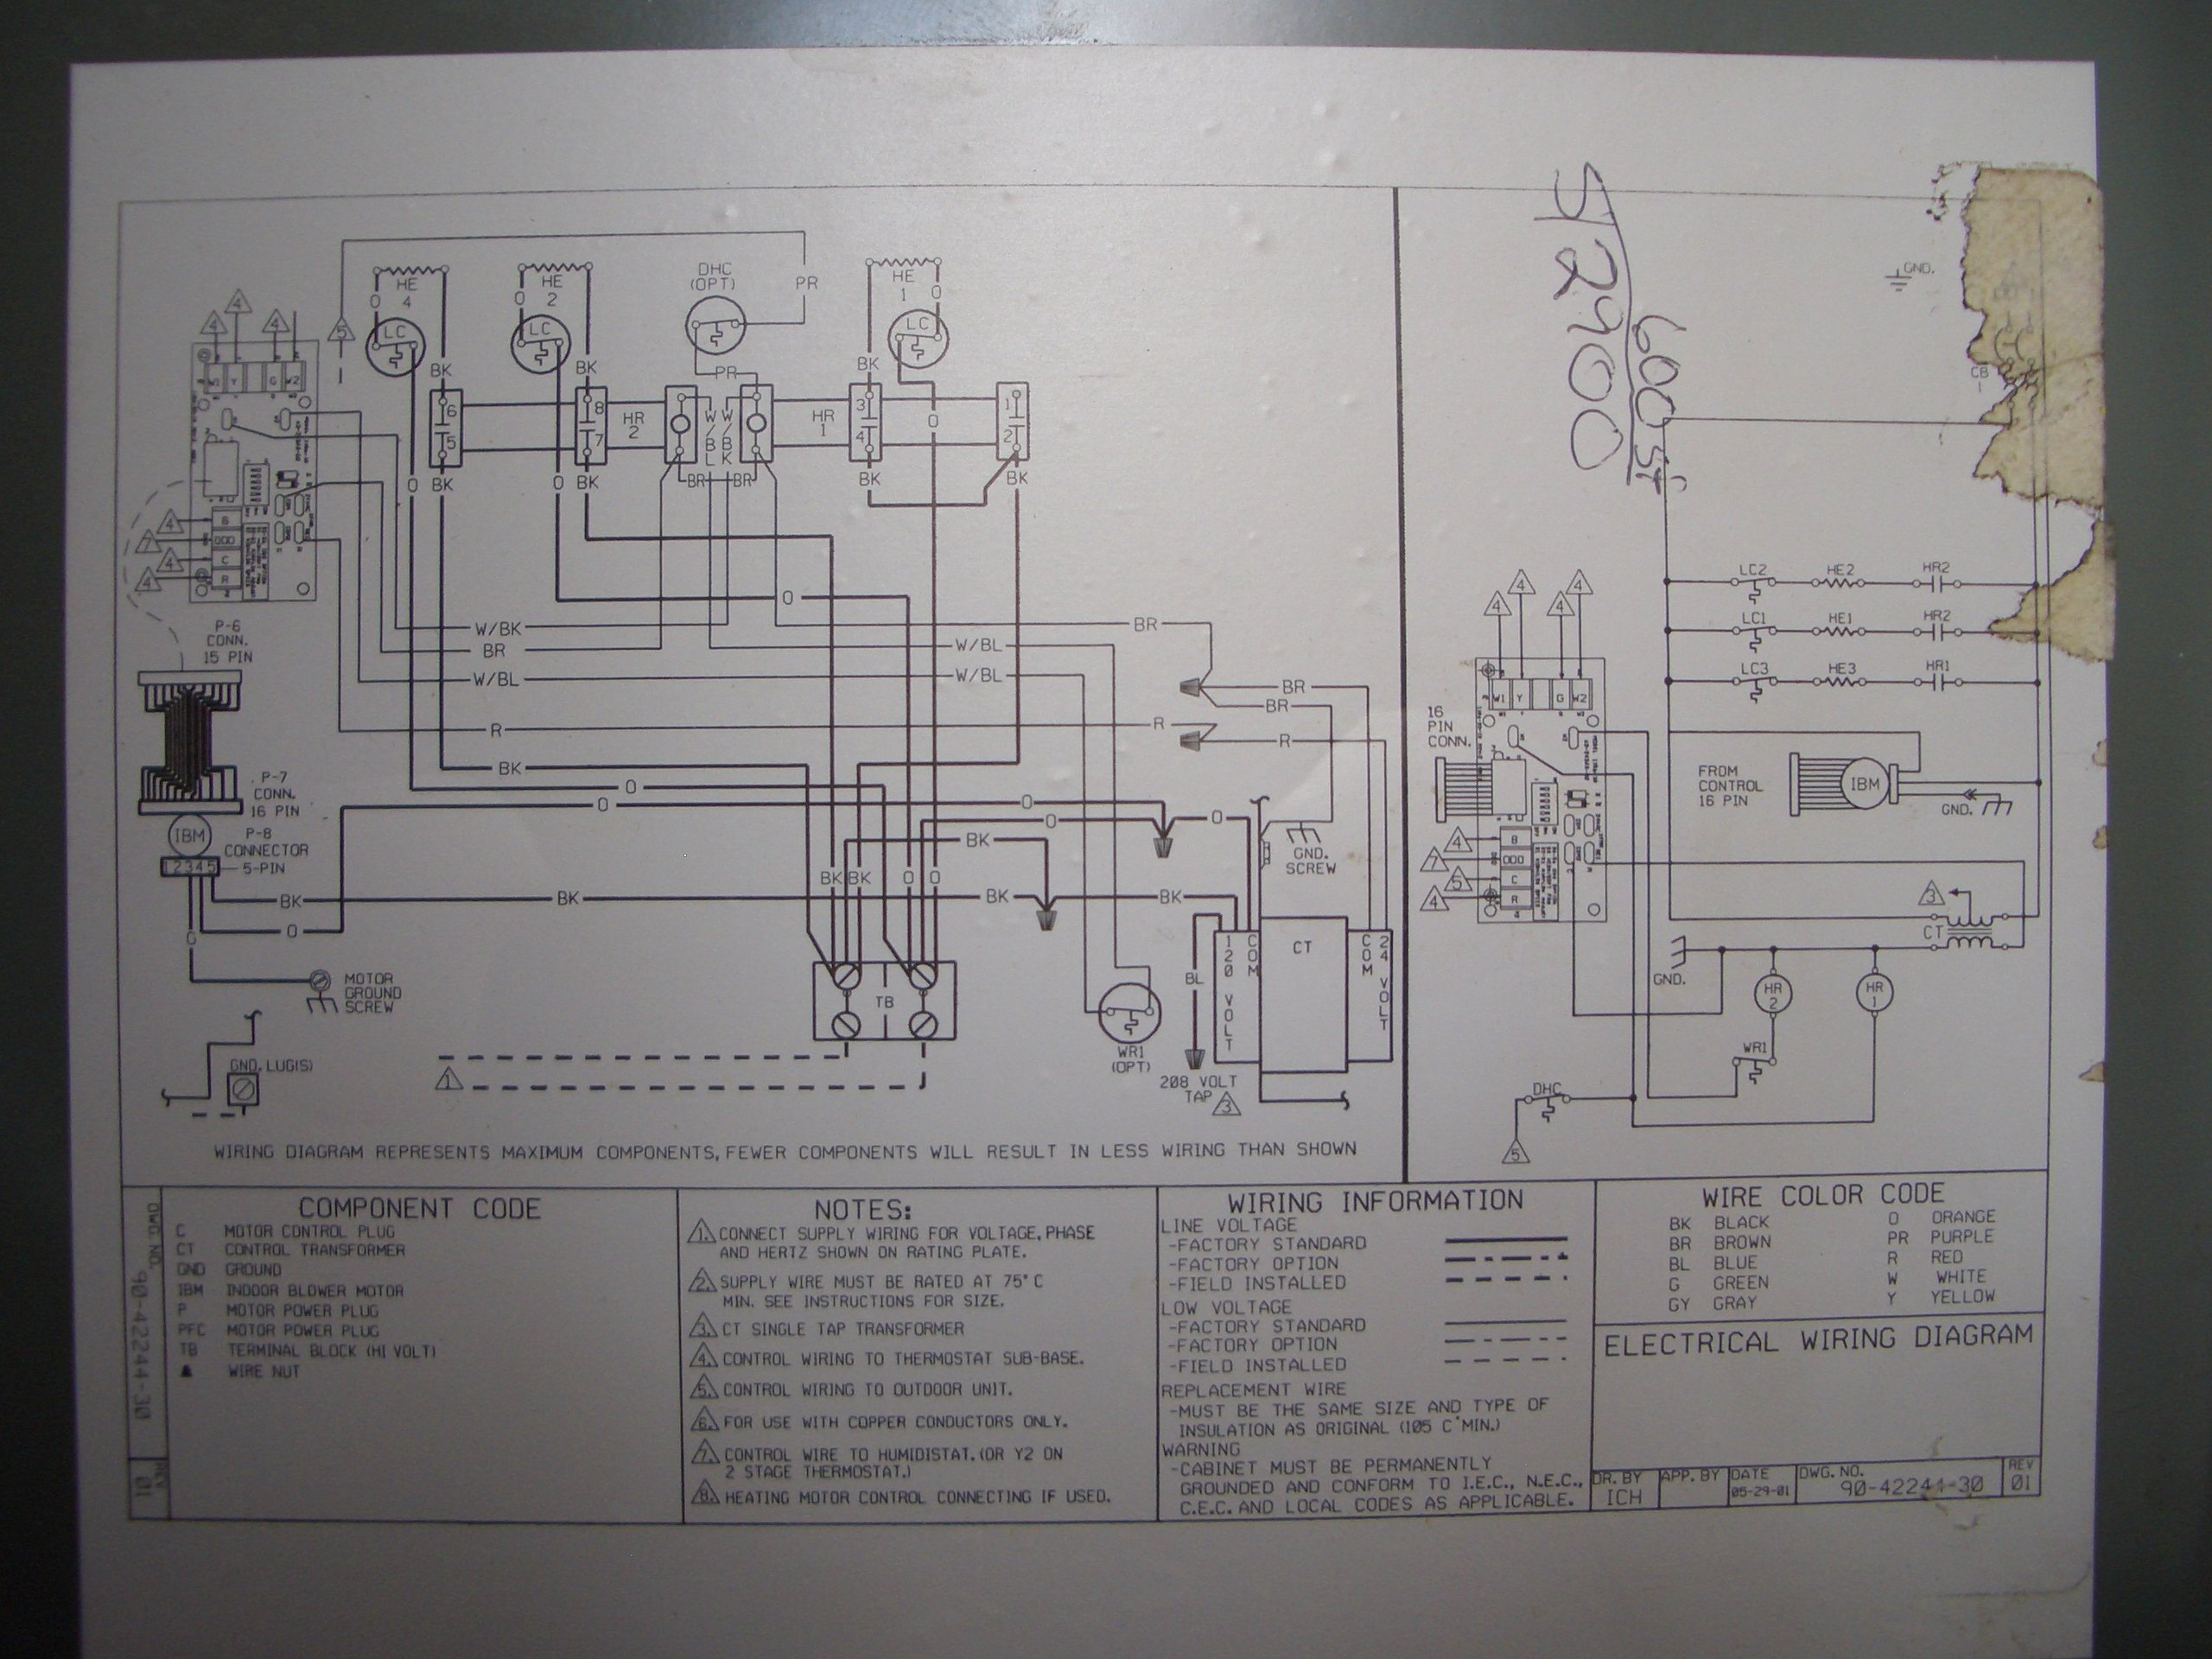 I Have No Defrost Cycle On My Rheem Rbhk 2005 Series Air Timer Wiring Diagrams Schematic